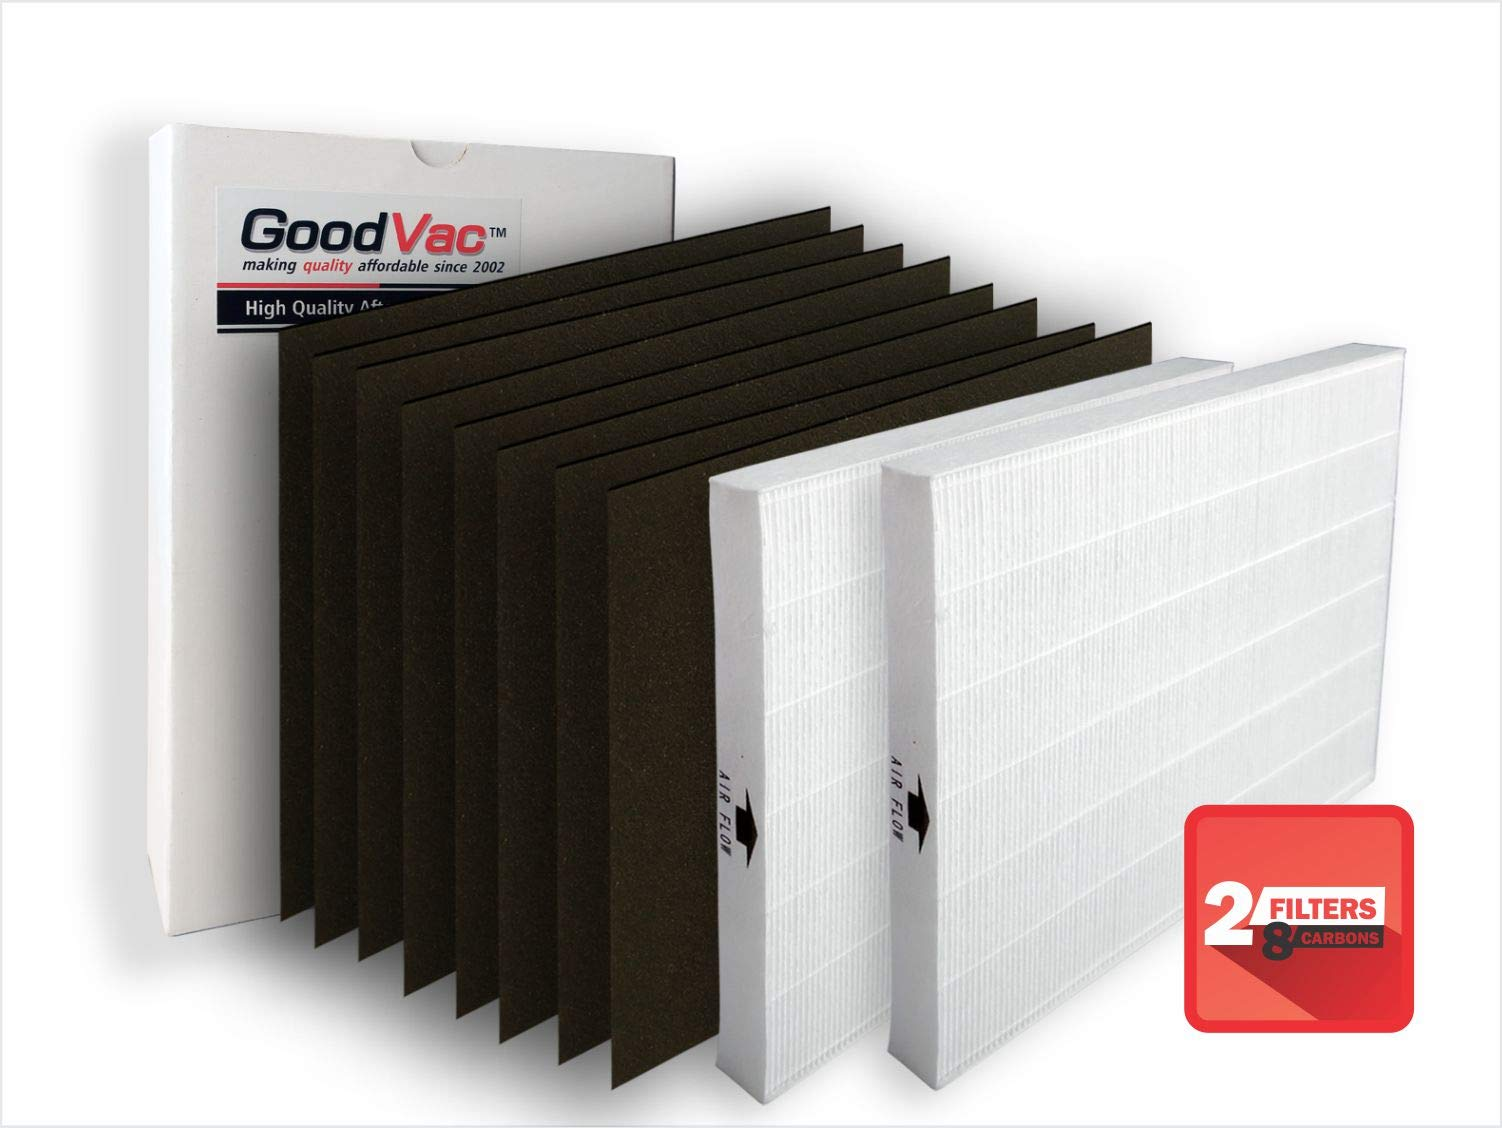 GOODVAC 1 Hepa Filter and 4 Carbon Filters to fit Electrolux EL490 and EL491 air purifiers, Replaces OEM Filter kit EL017. Quality Replacement Filters (2) by GOODVAC